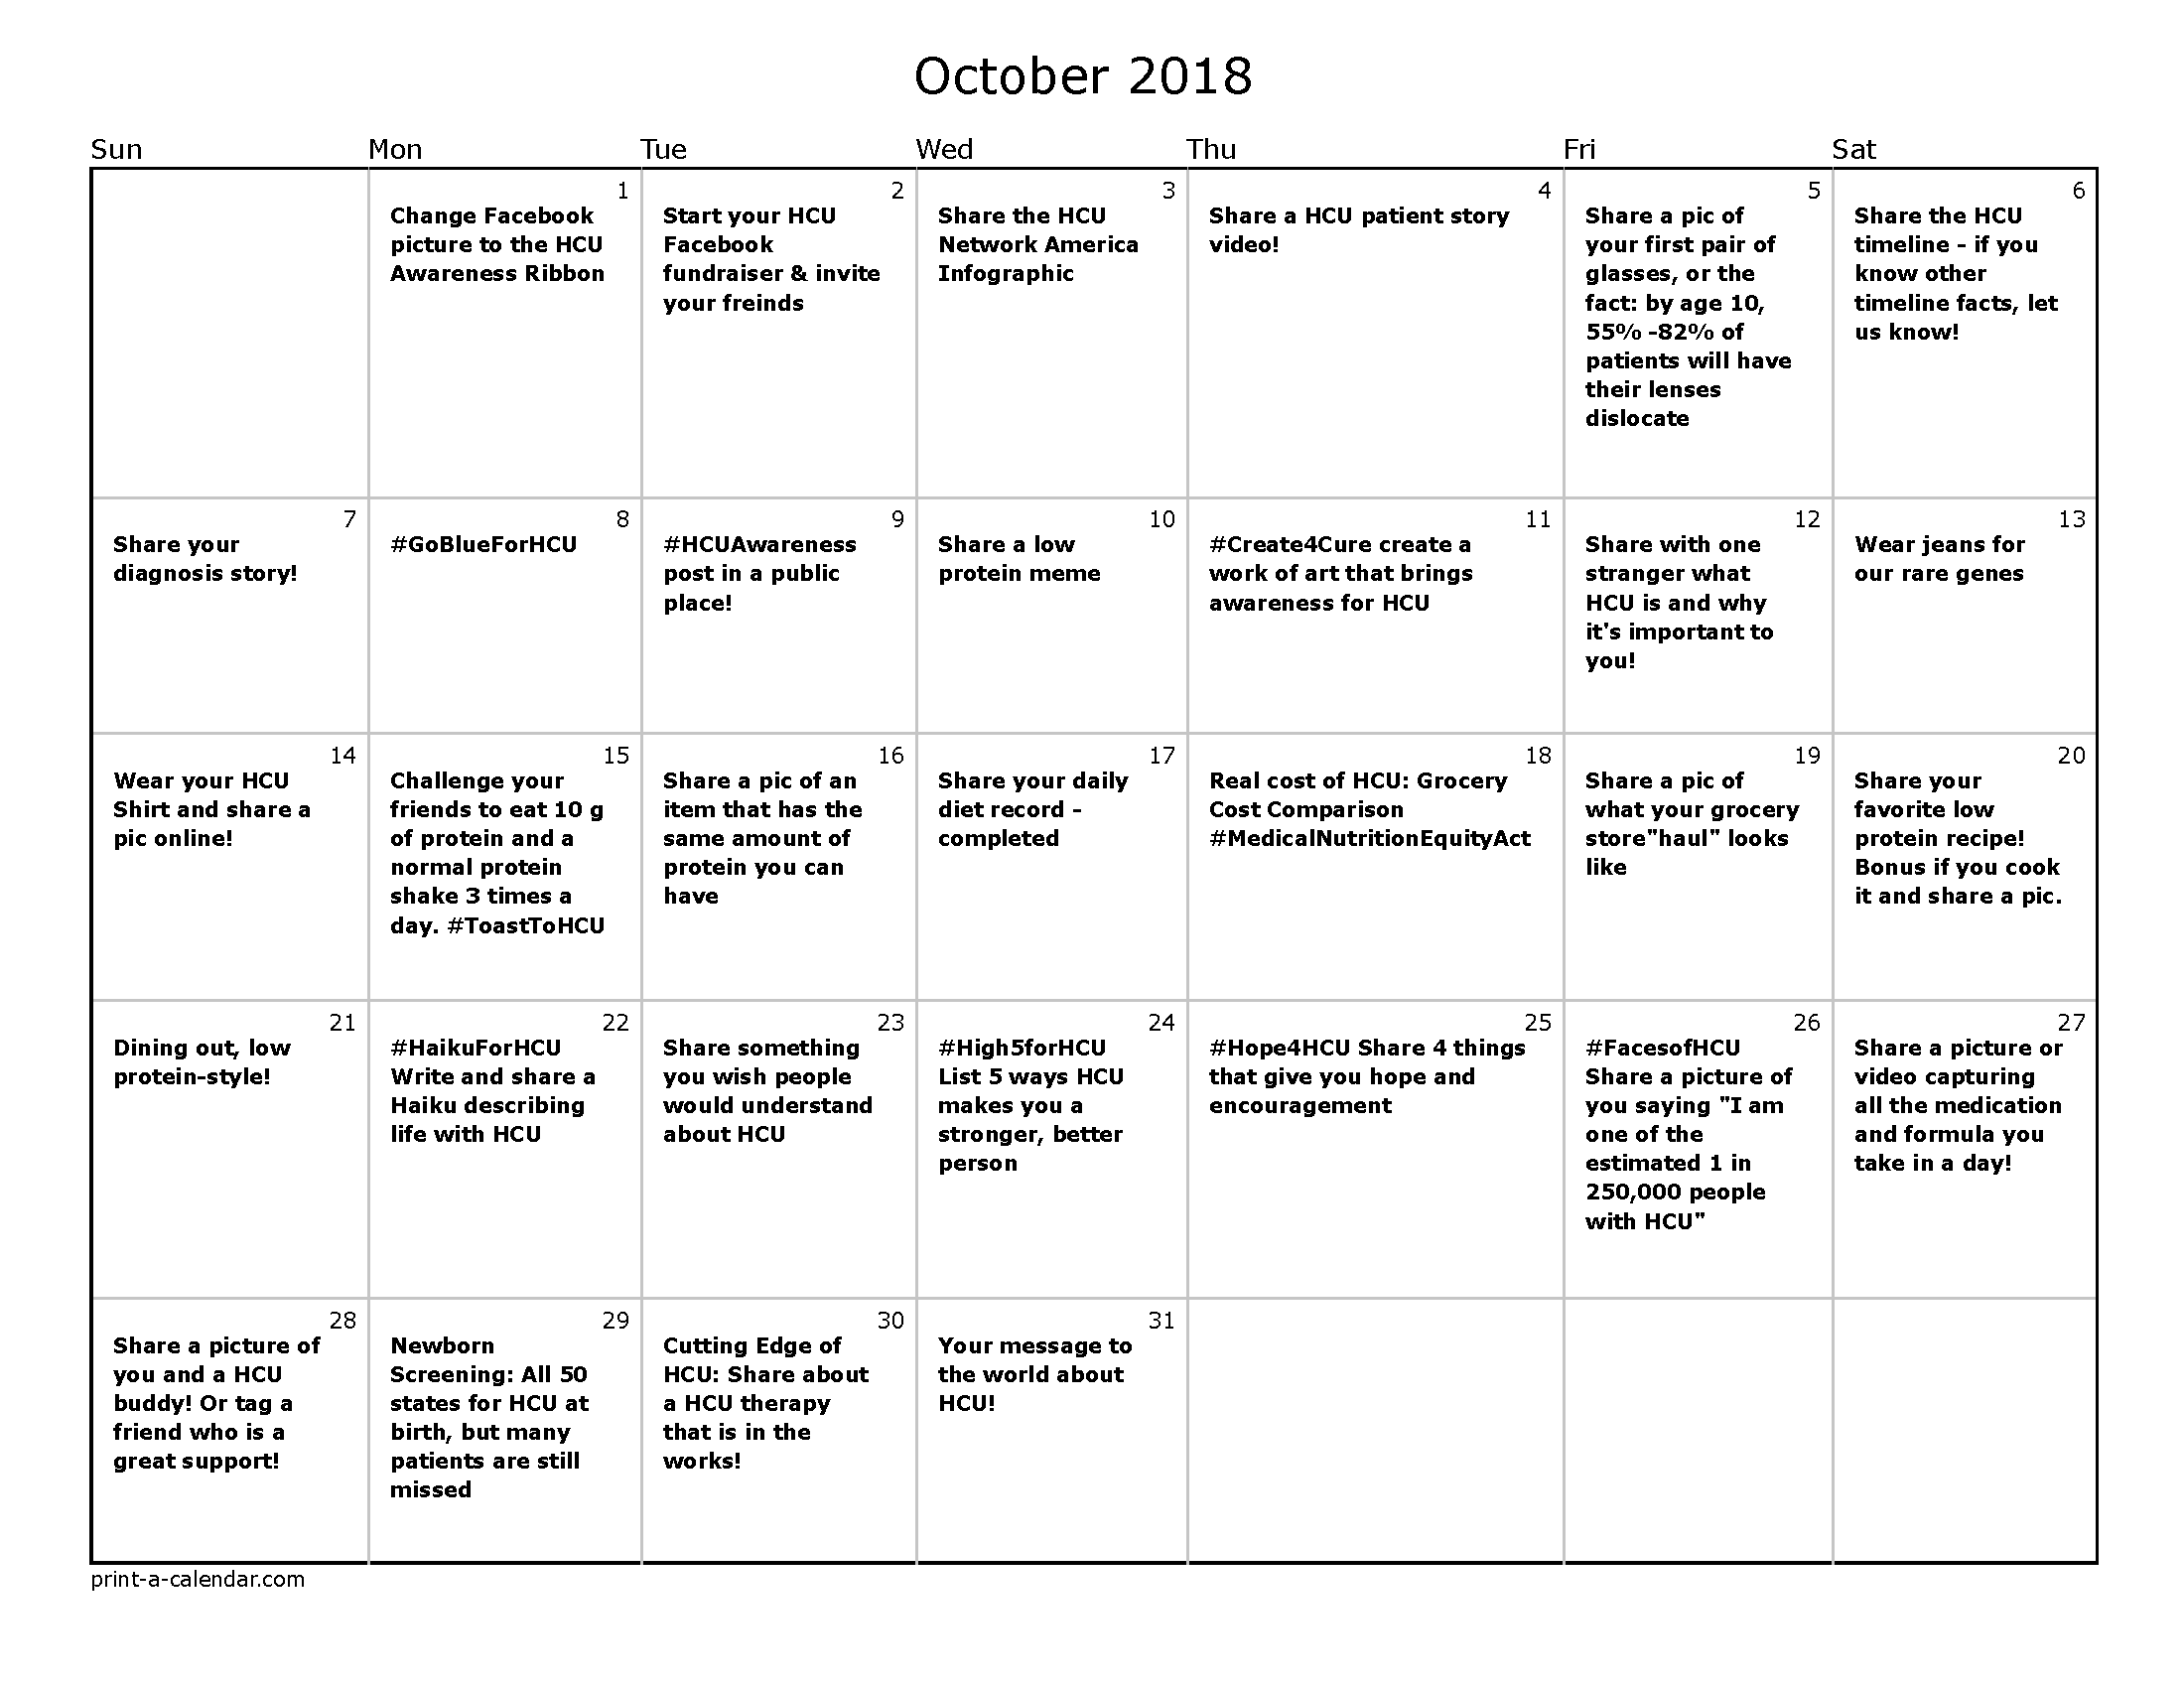 October 2018 Calendar _ Horizontal